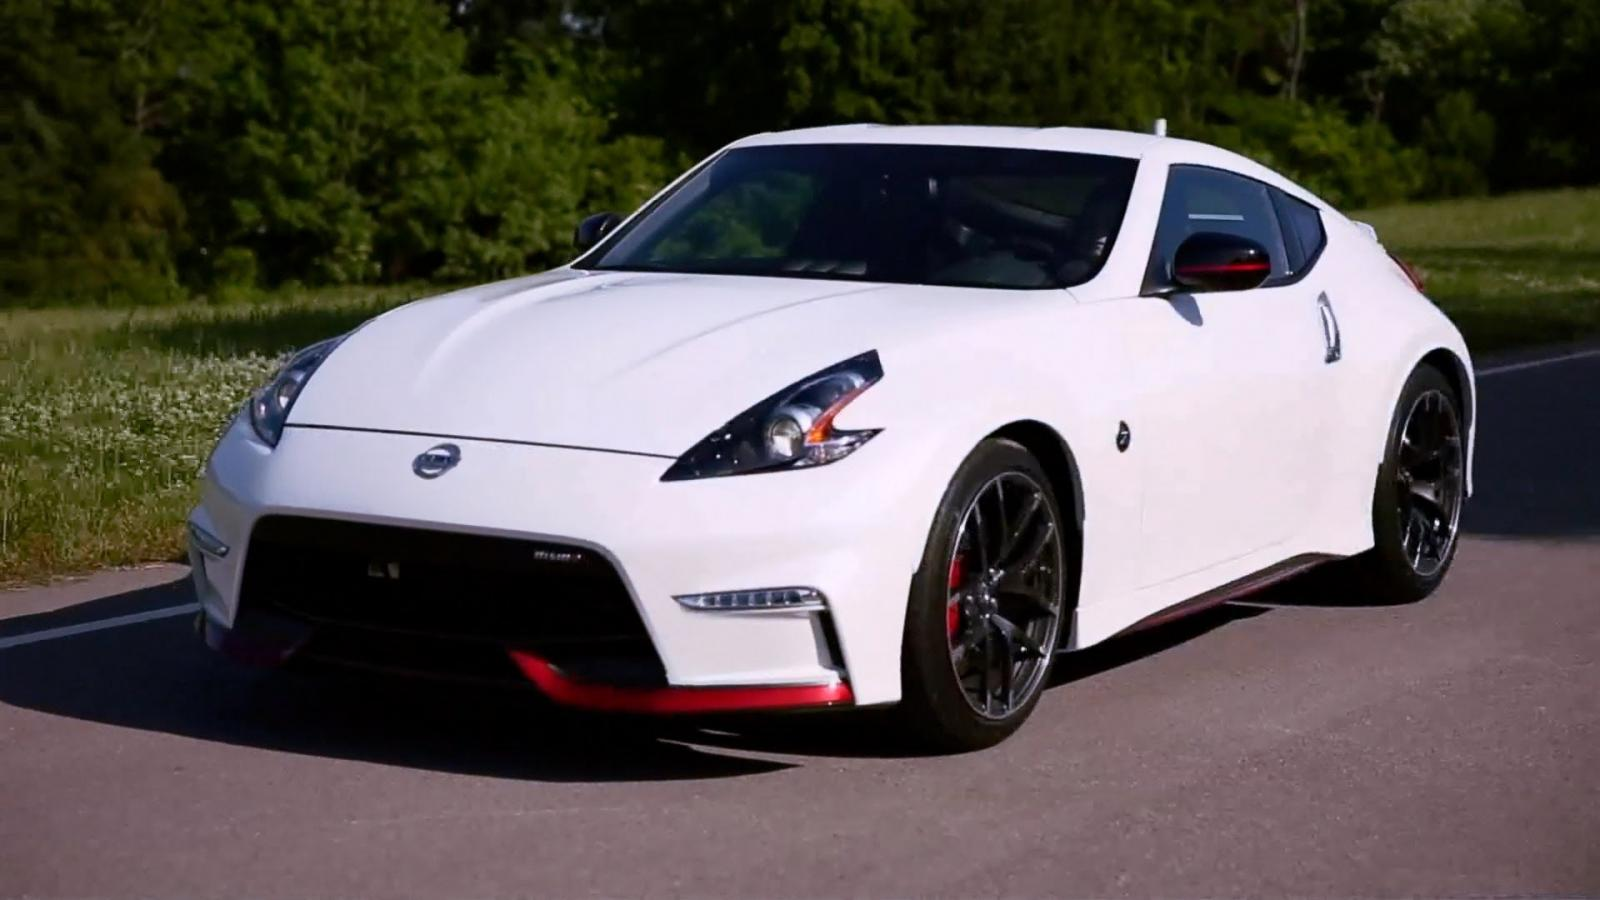 2015 nissan 370z information and photos zombiedrive. Black Bedroom Furniture Sets. Home Design Ideas